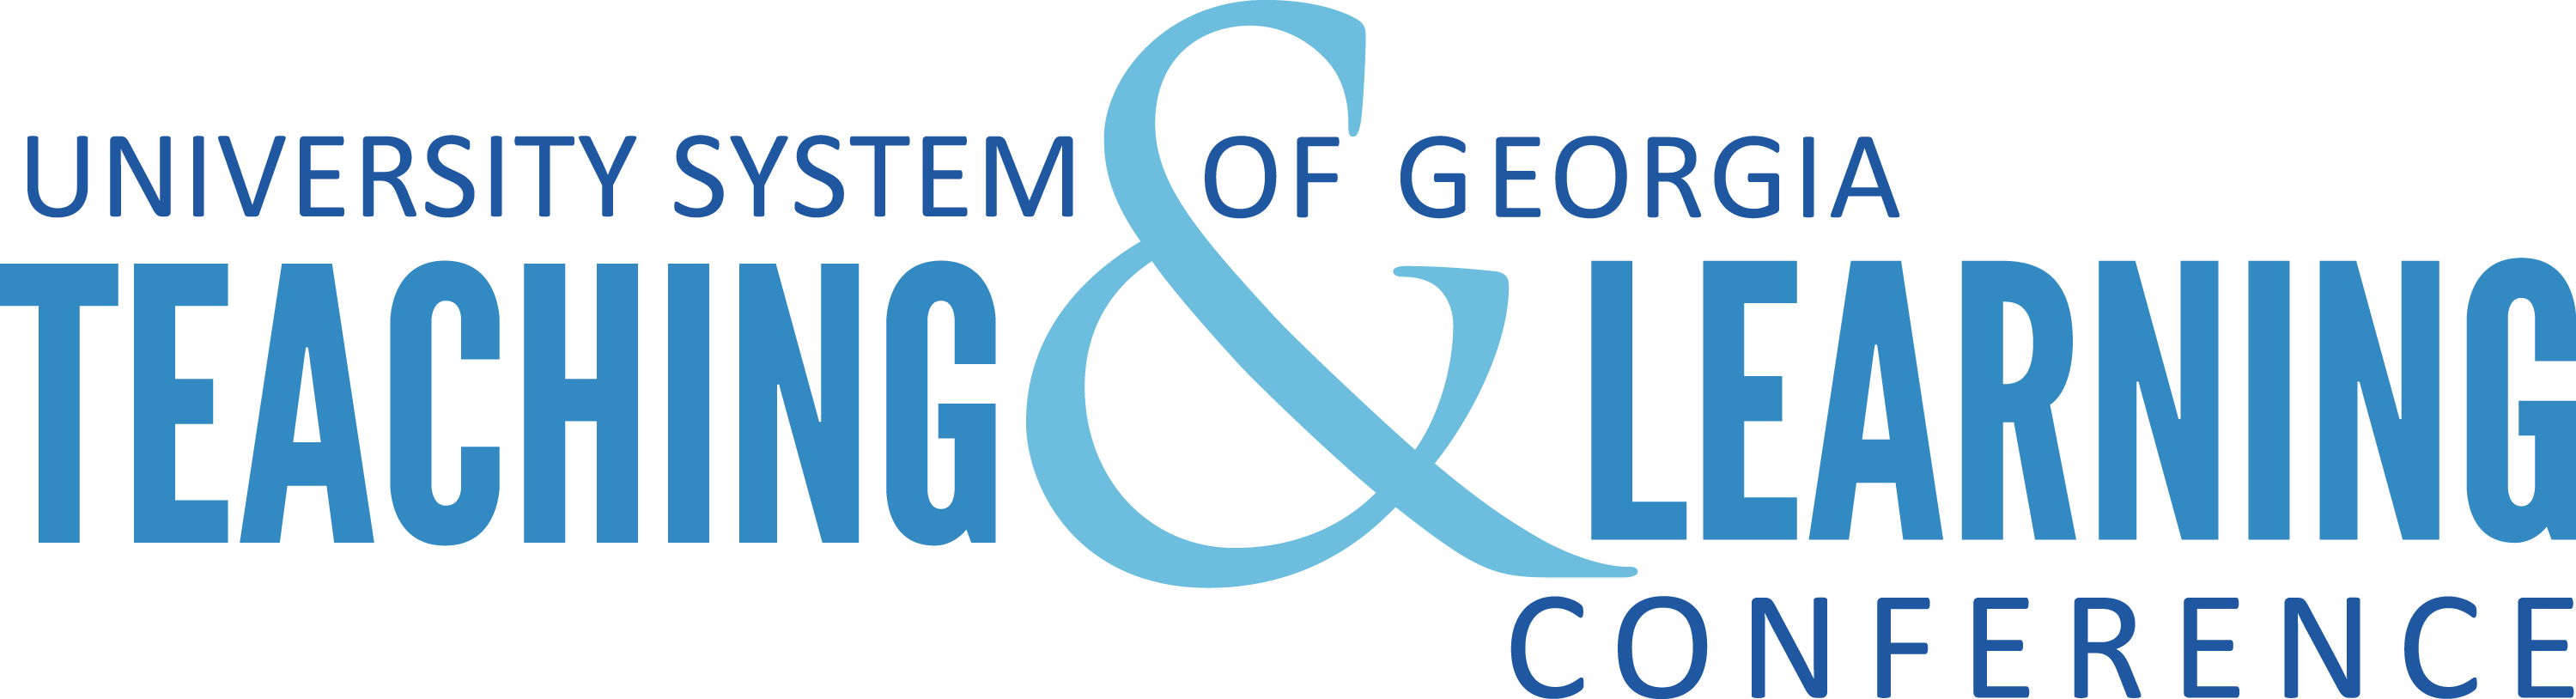 USG Teaching and Learning Conference Logo NEW